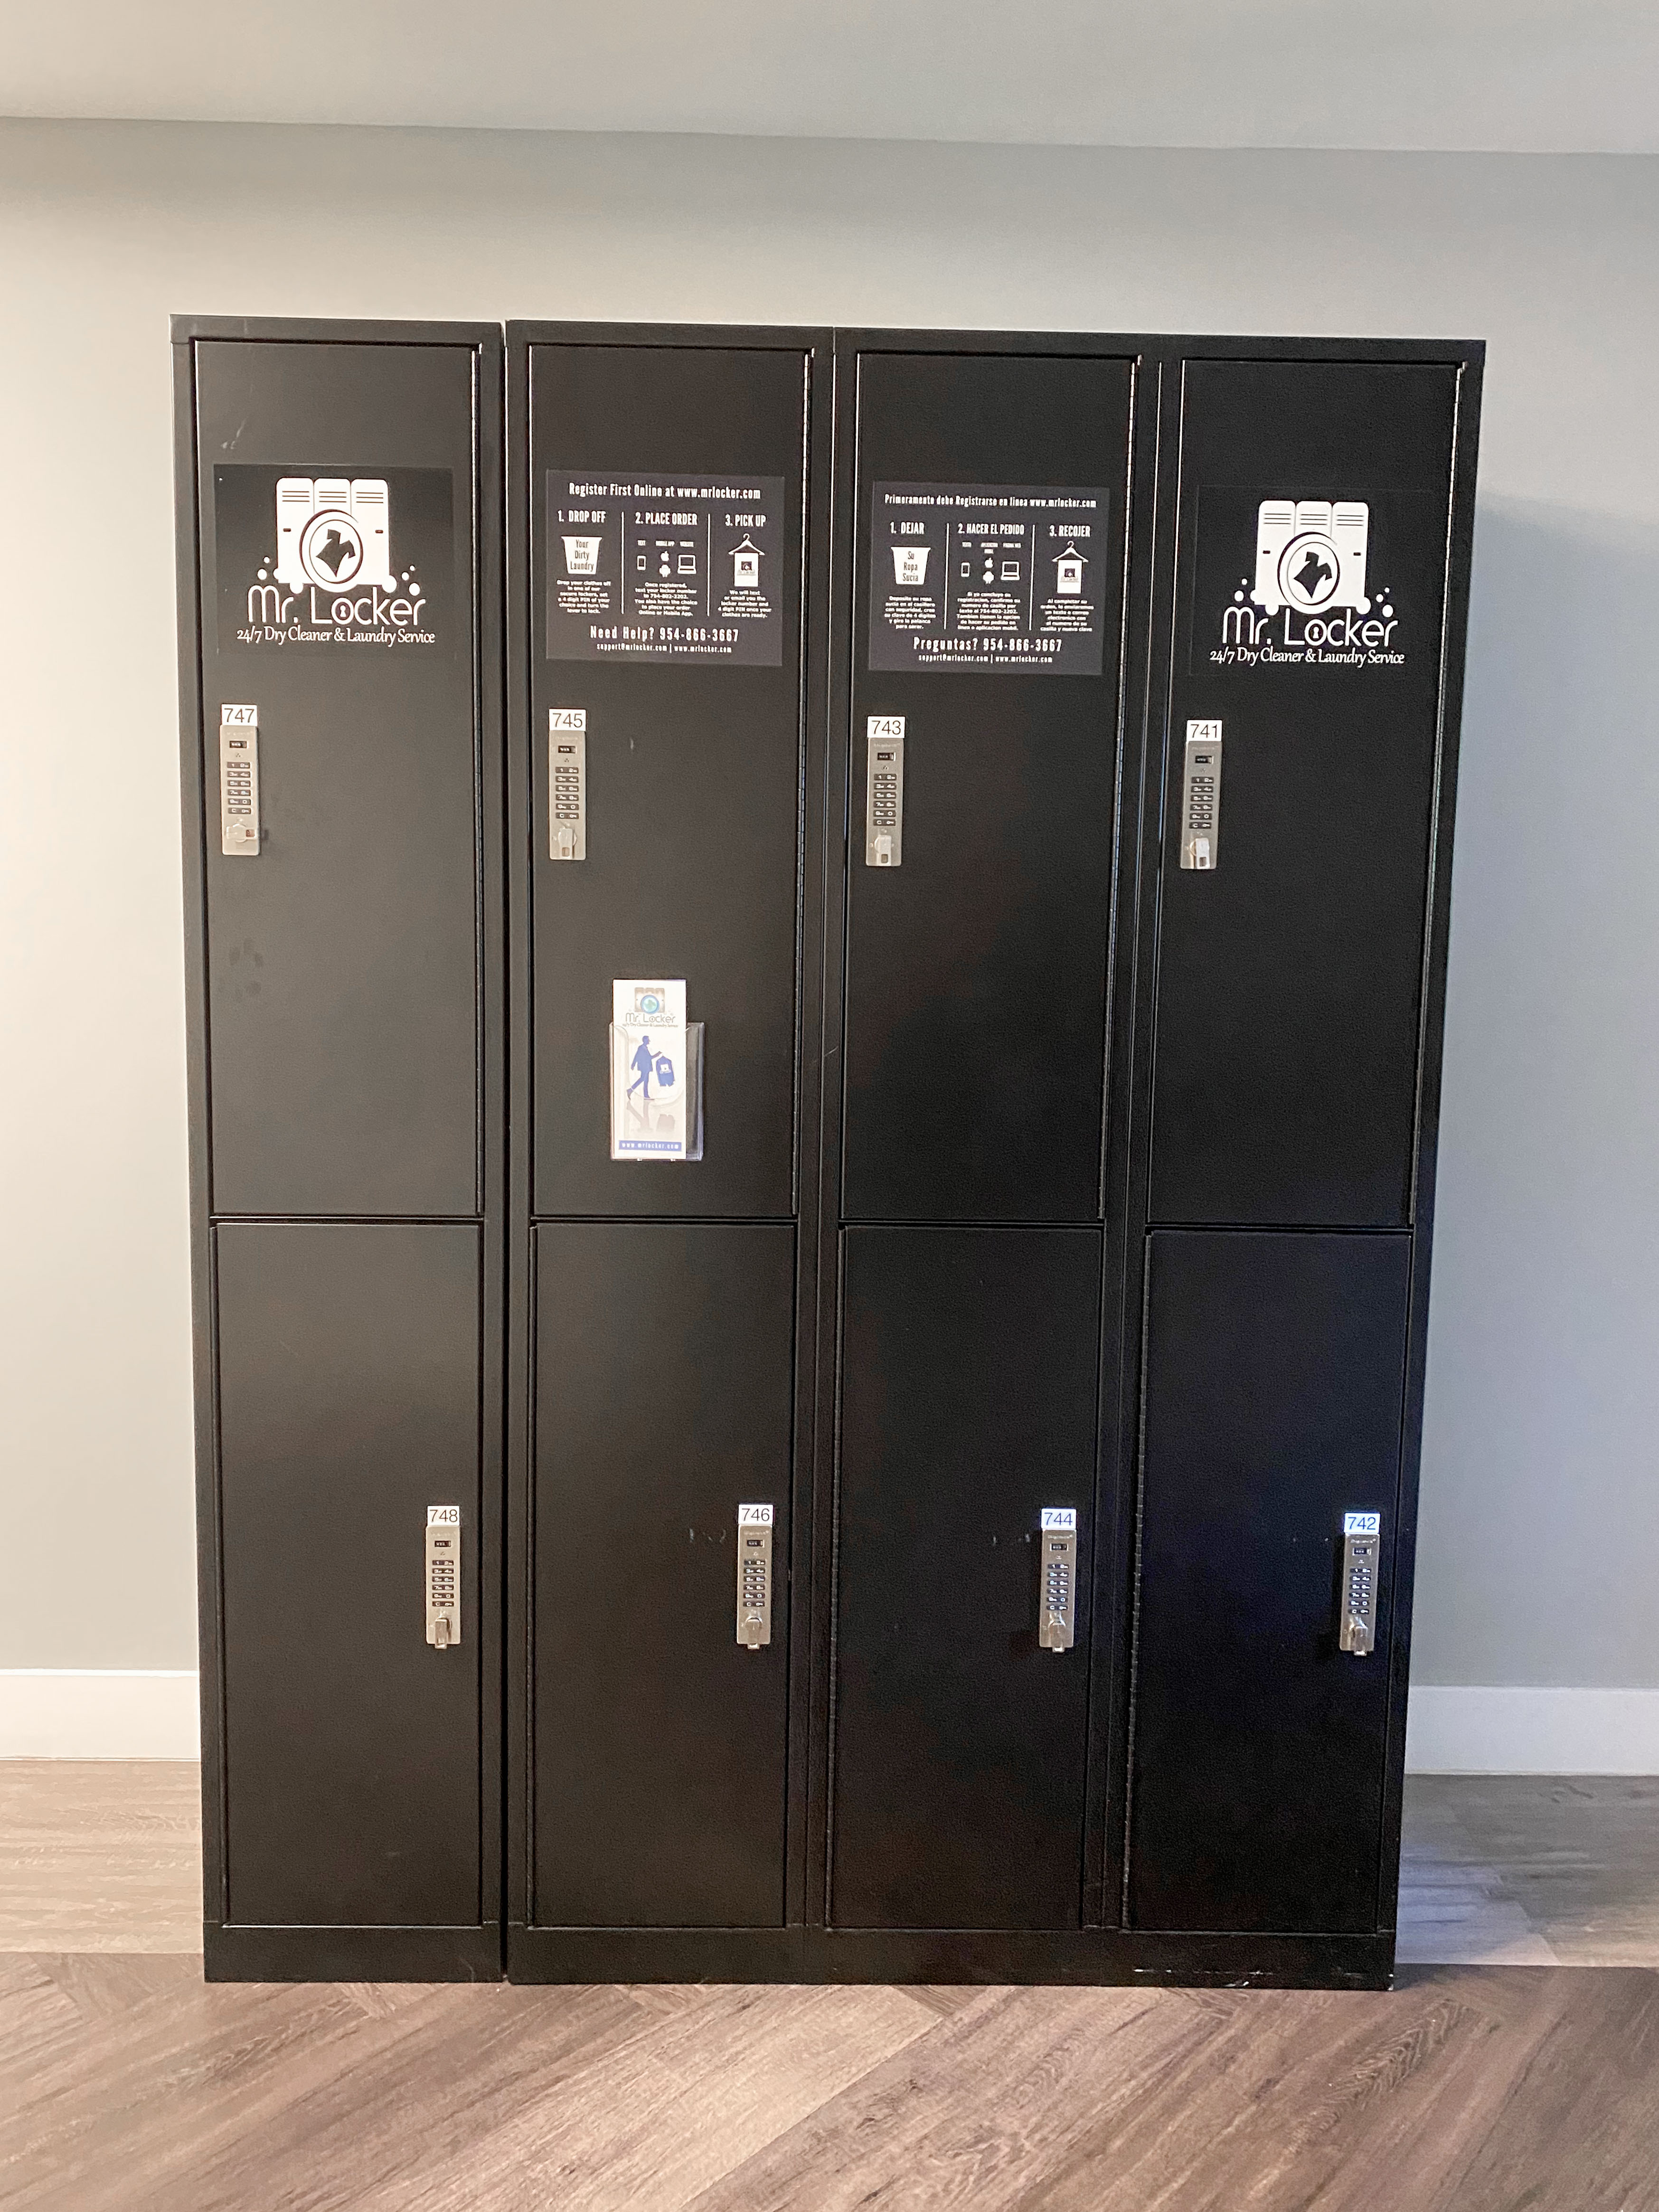 Mr. Locker for dry cleaning services at Sanctuary Doral